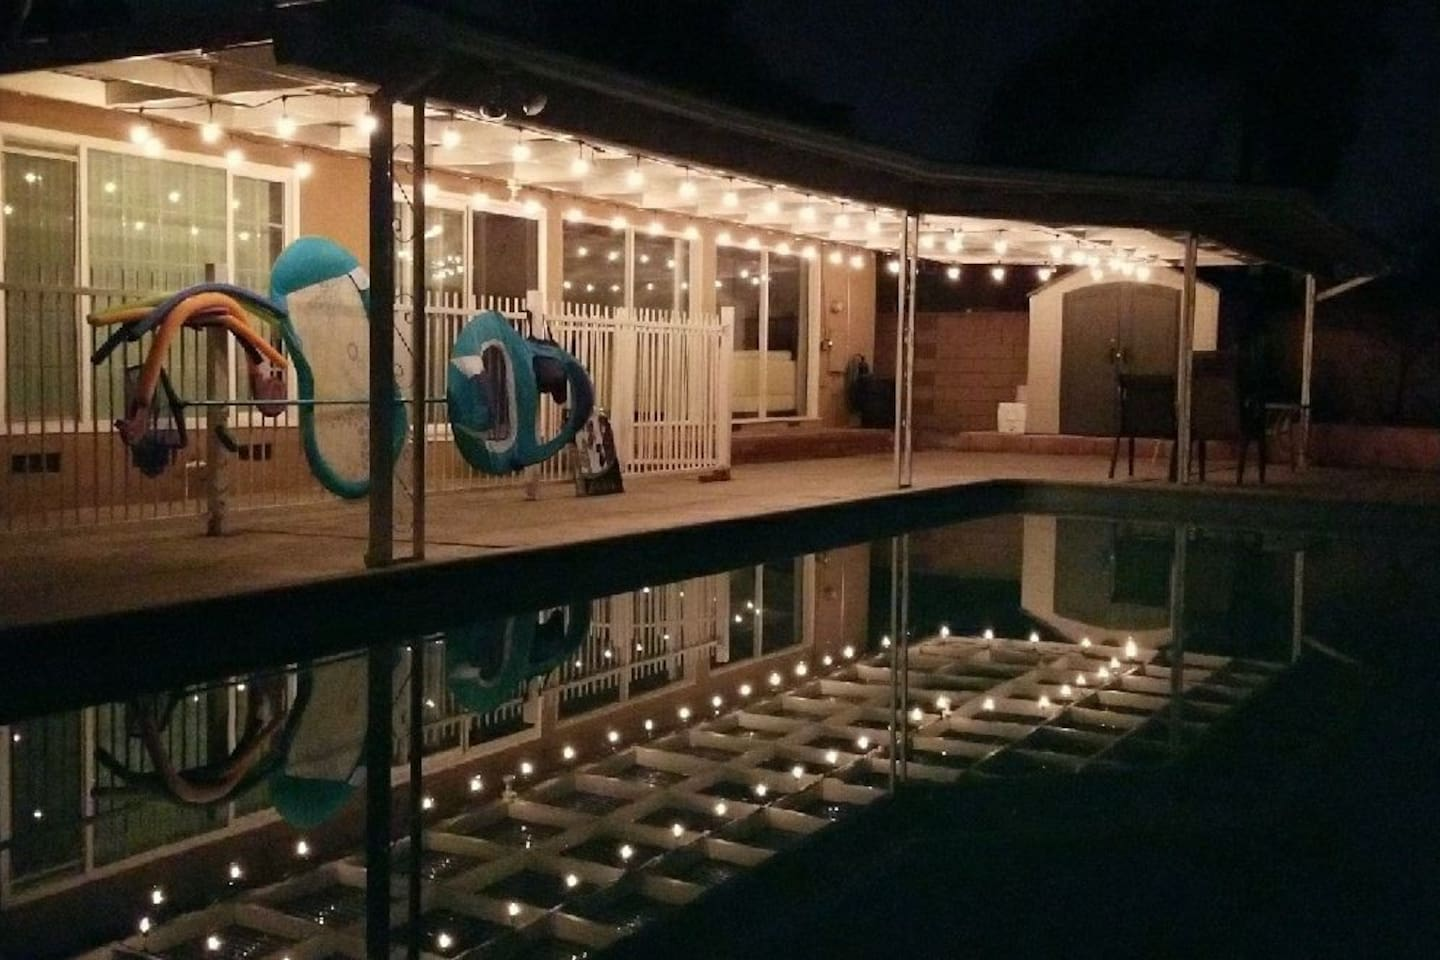 Spacious Pool House 4 miles from Disneyland - Houses for Rent in ...